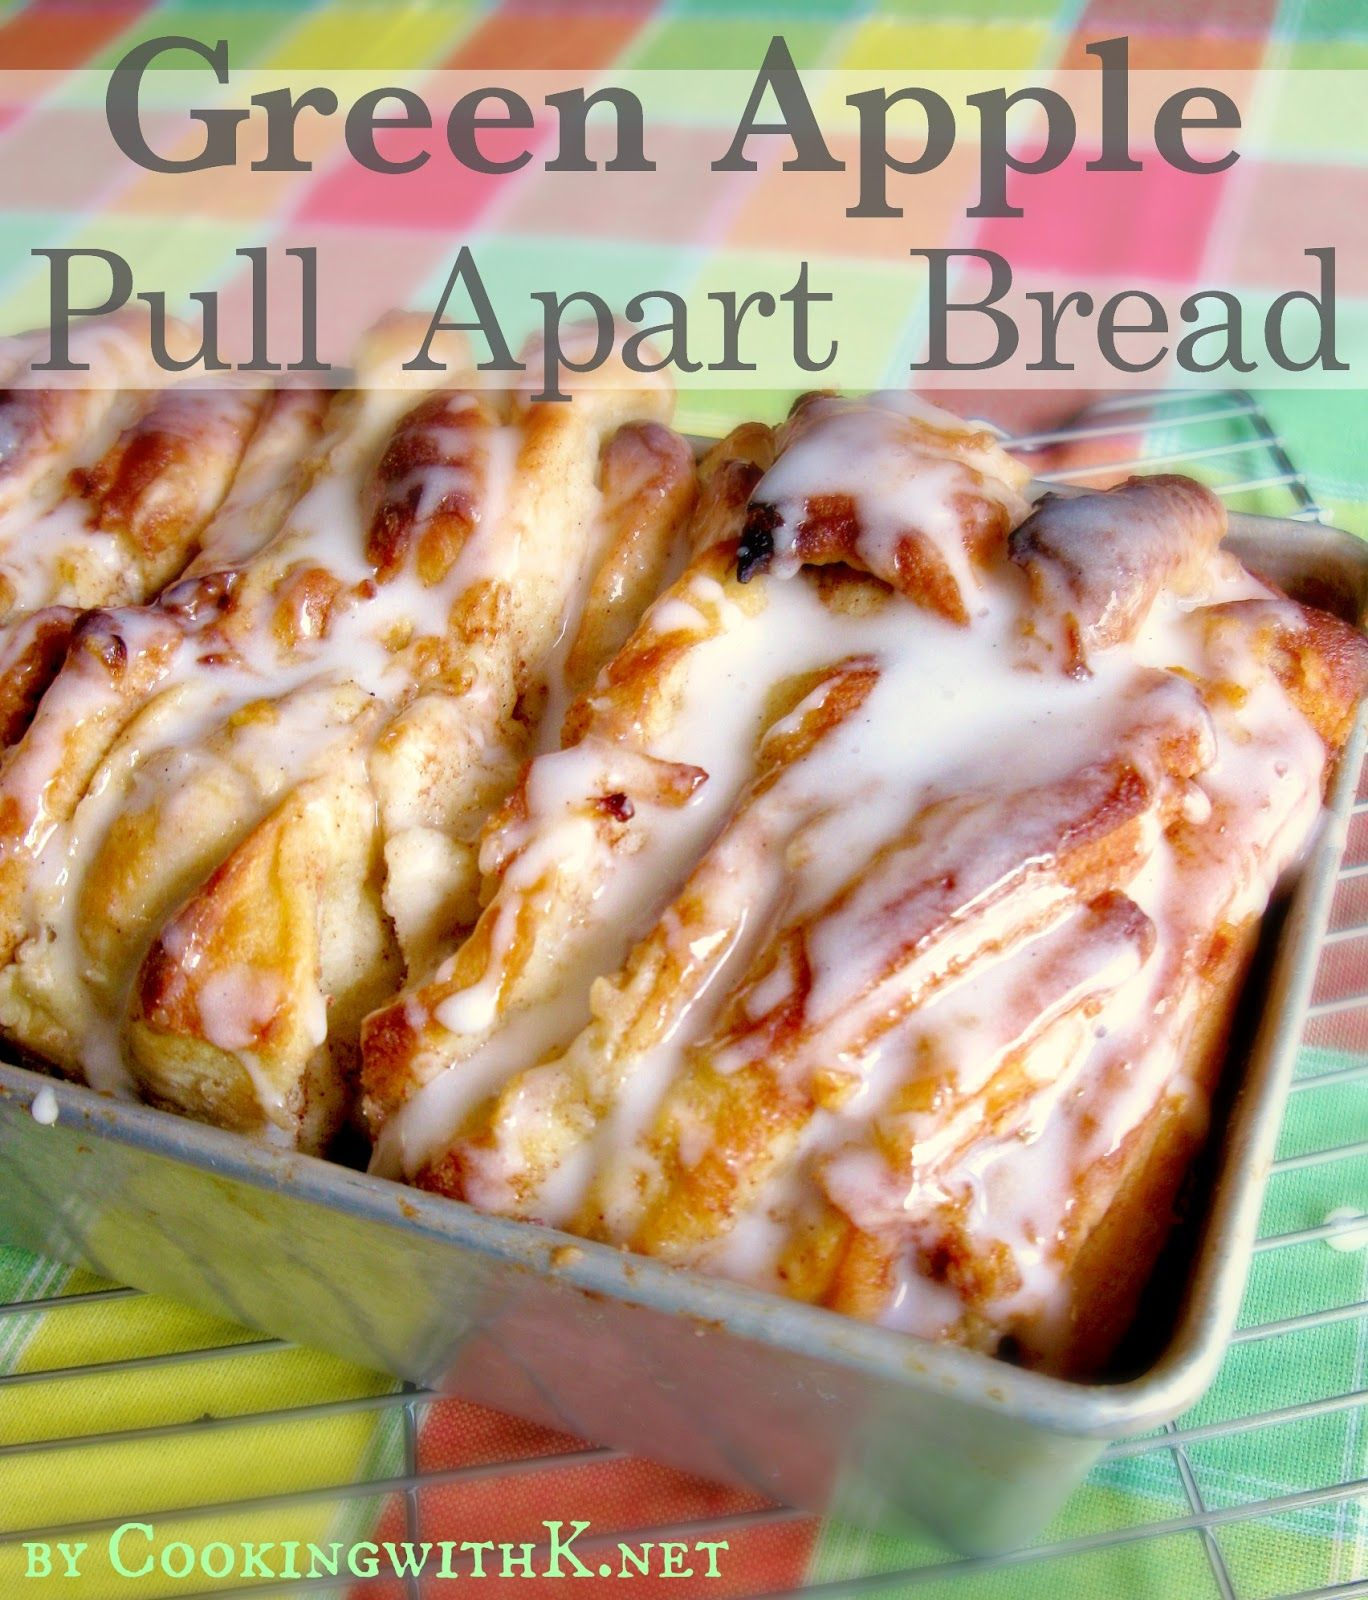 Cooking with K | Southern Kitchen Happenings: Green Apple Pull Apart Bread {Using Rhodes Frozen Bread}